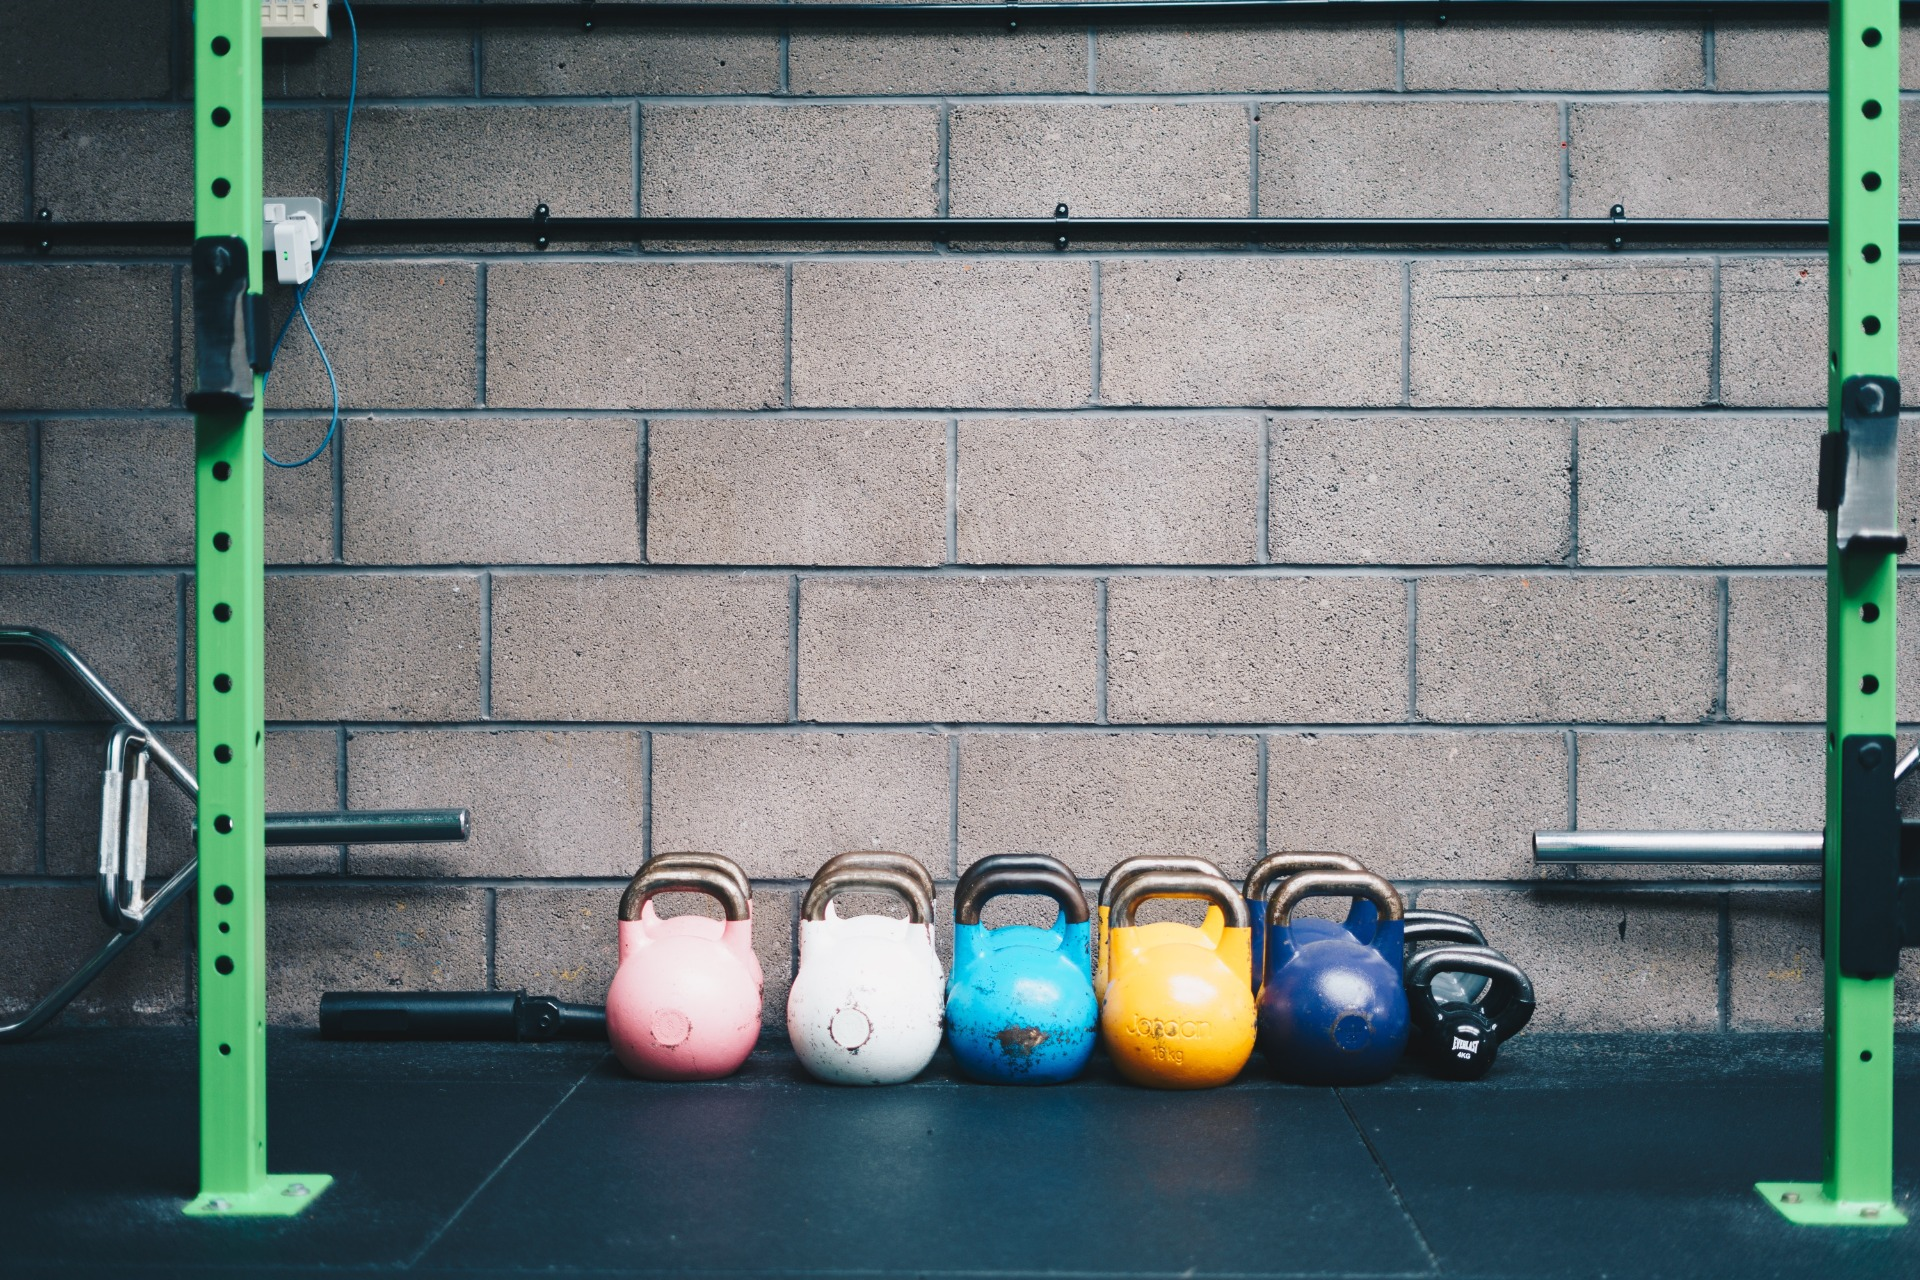 Kettle bells lined up against a concrete basement wall